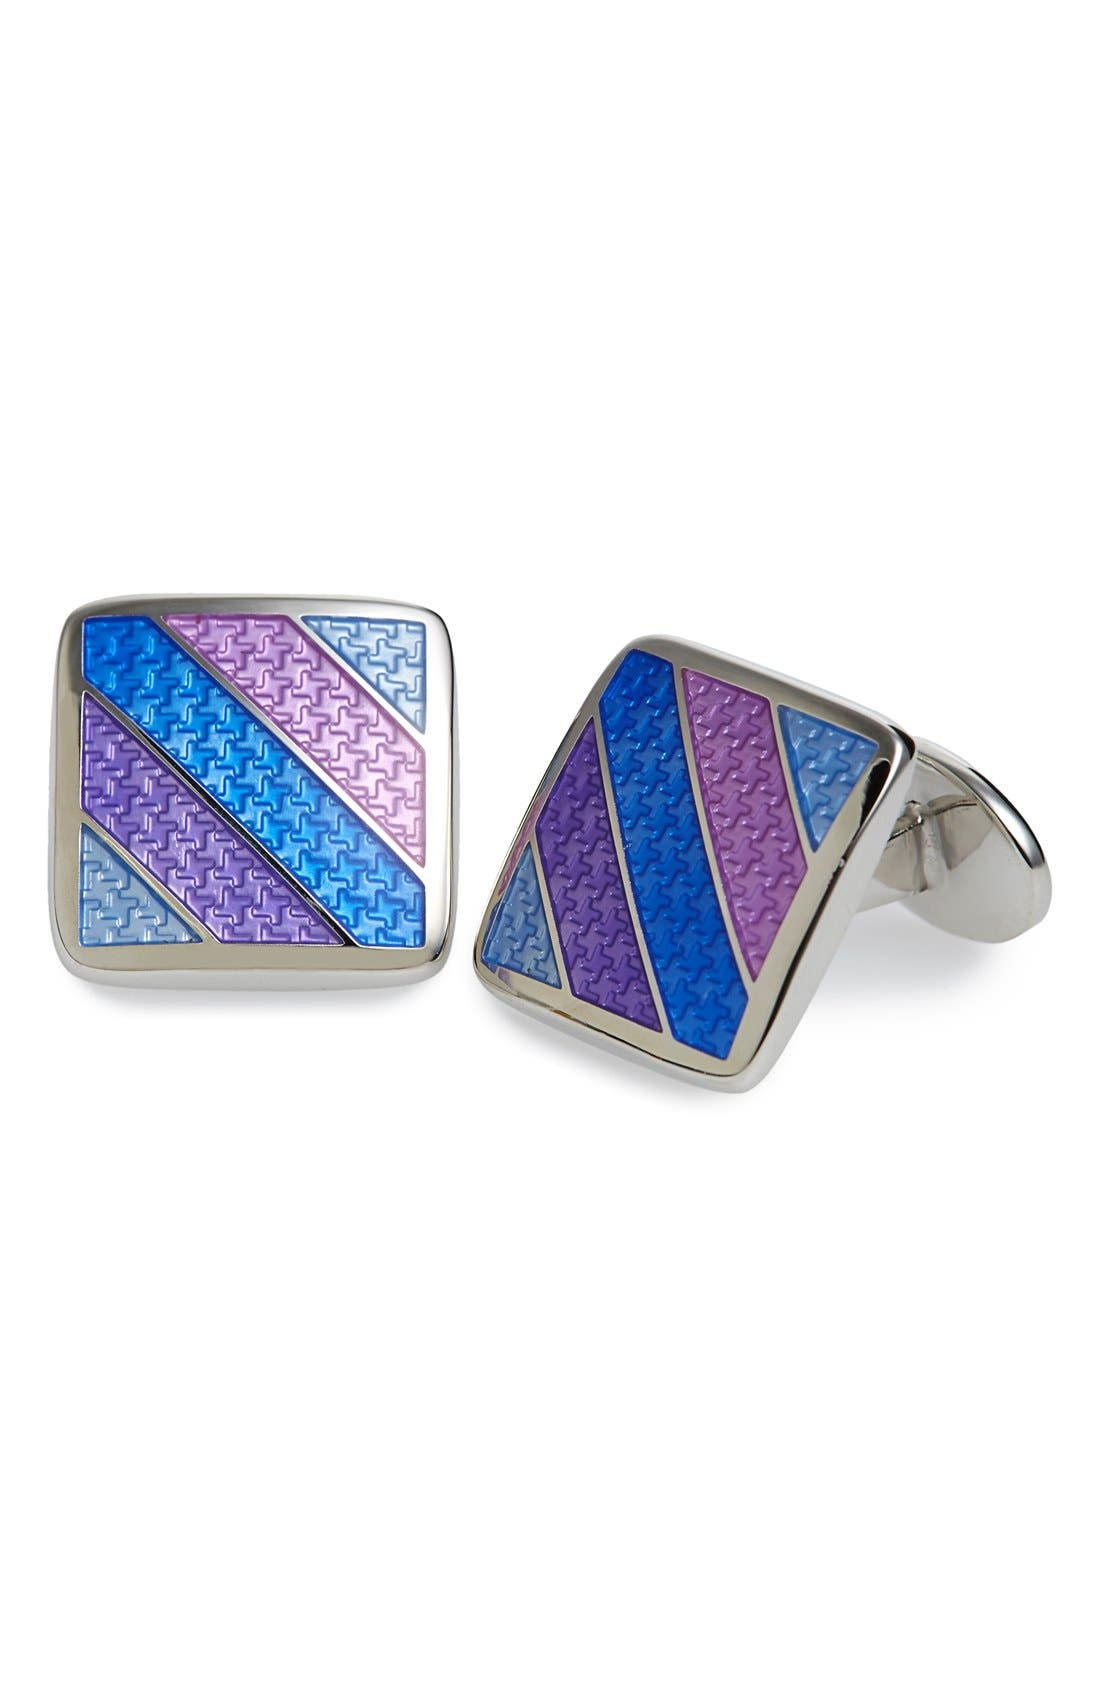 David Donahue Enamel Cuff Links